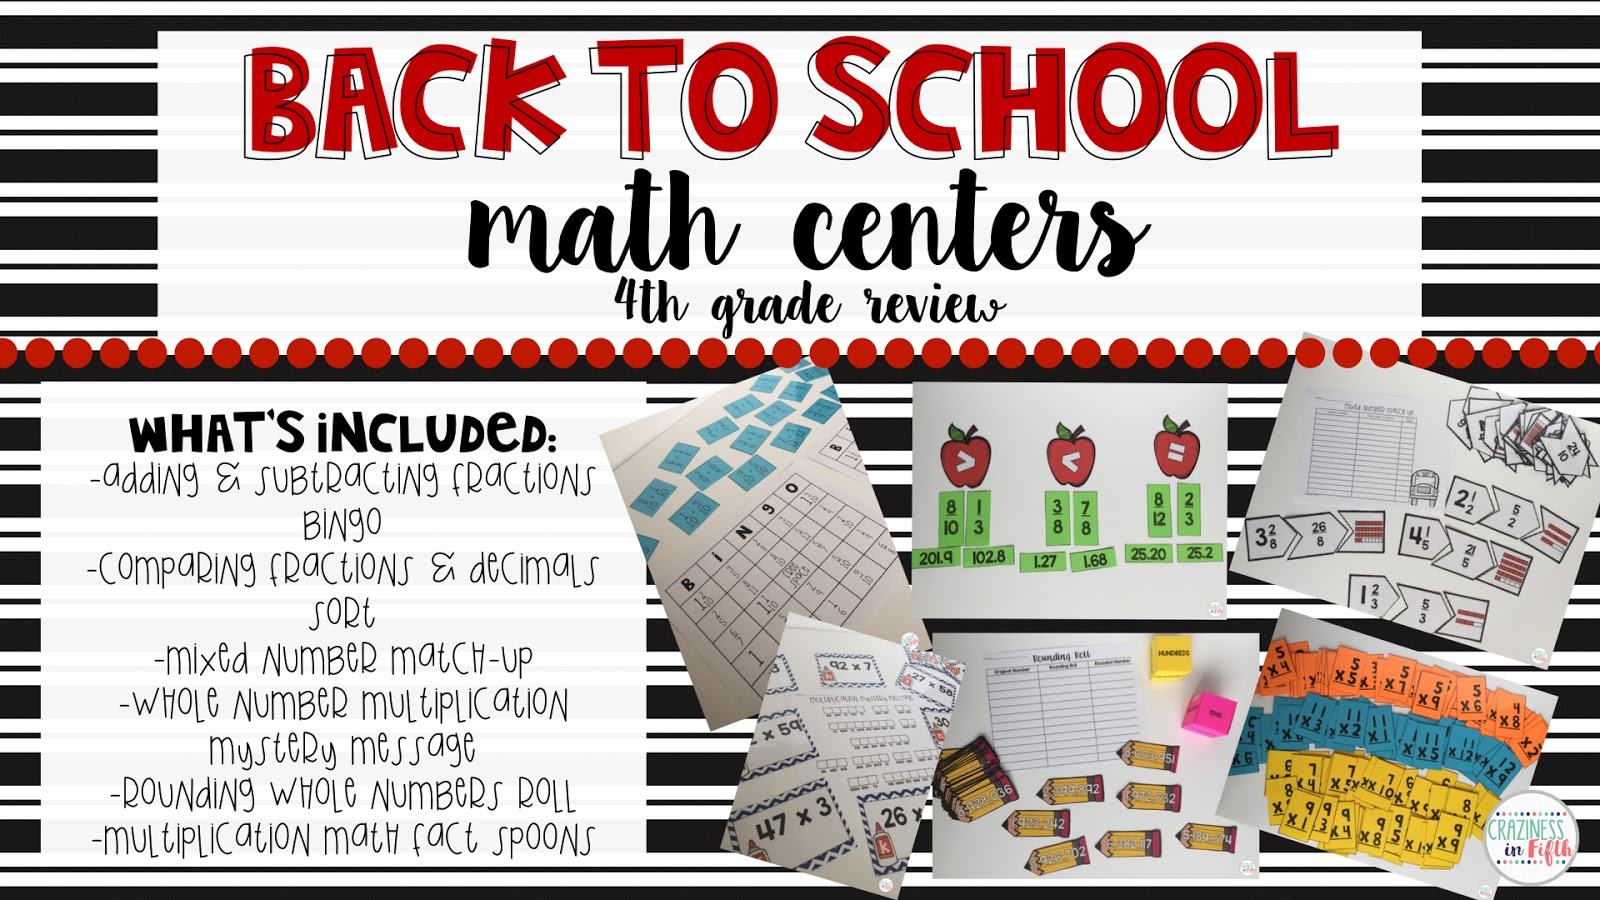 Craziness In Fifth Back To School Math Centers 4th Grade Review